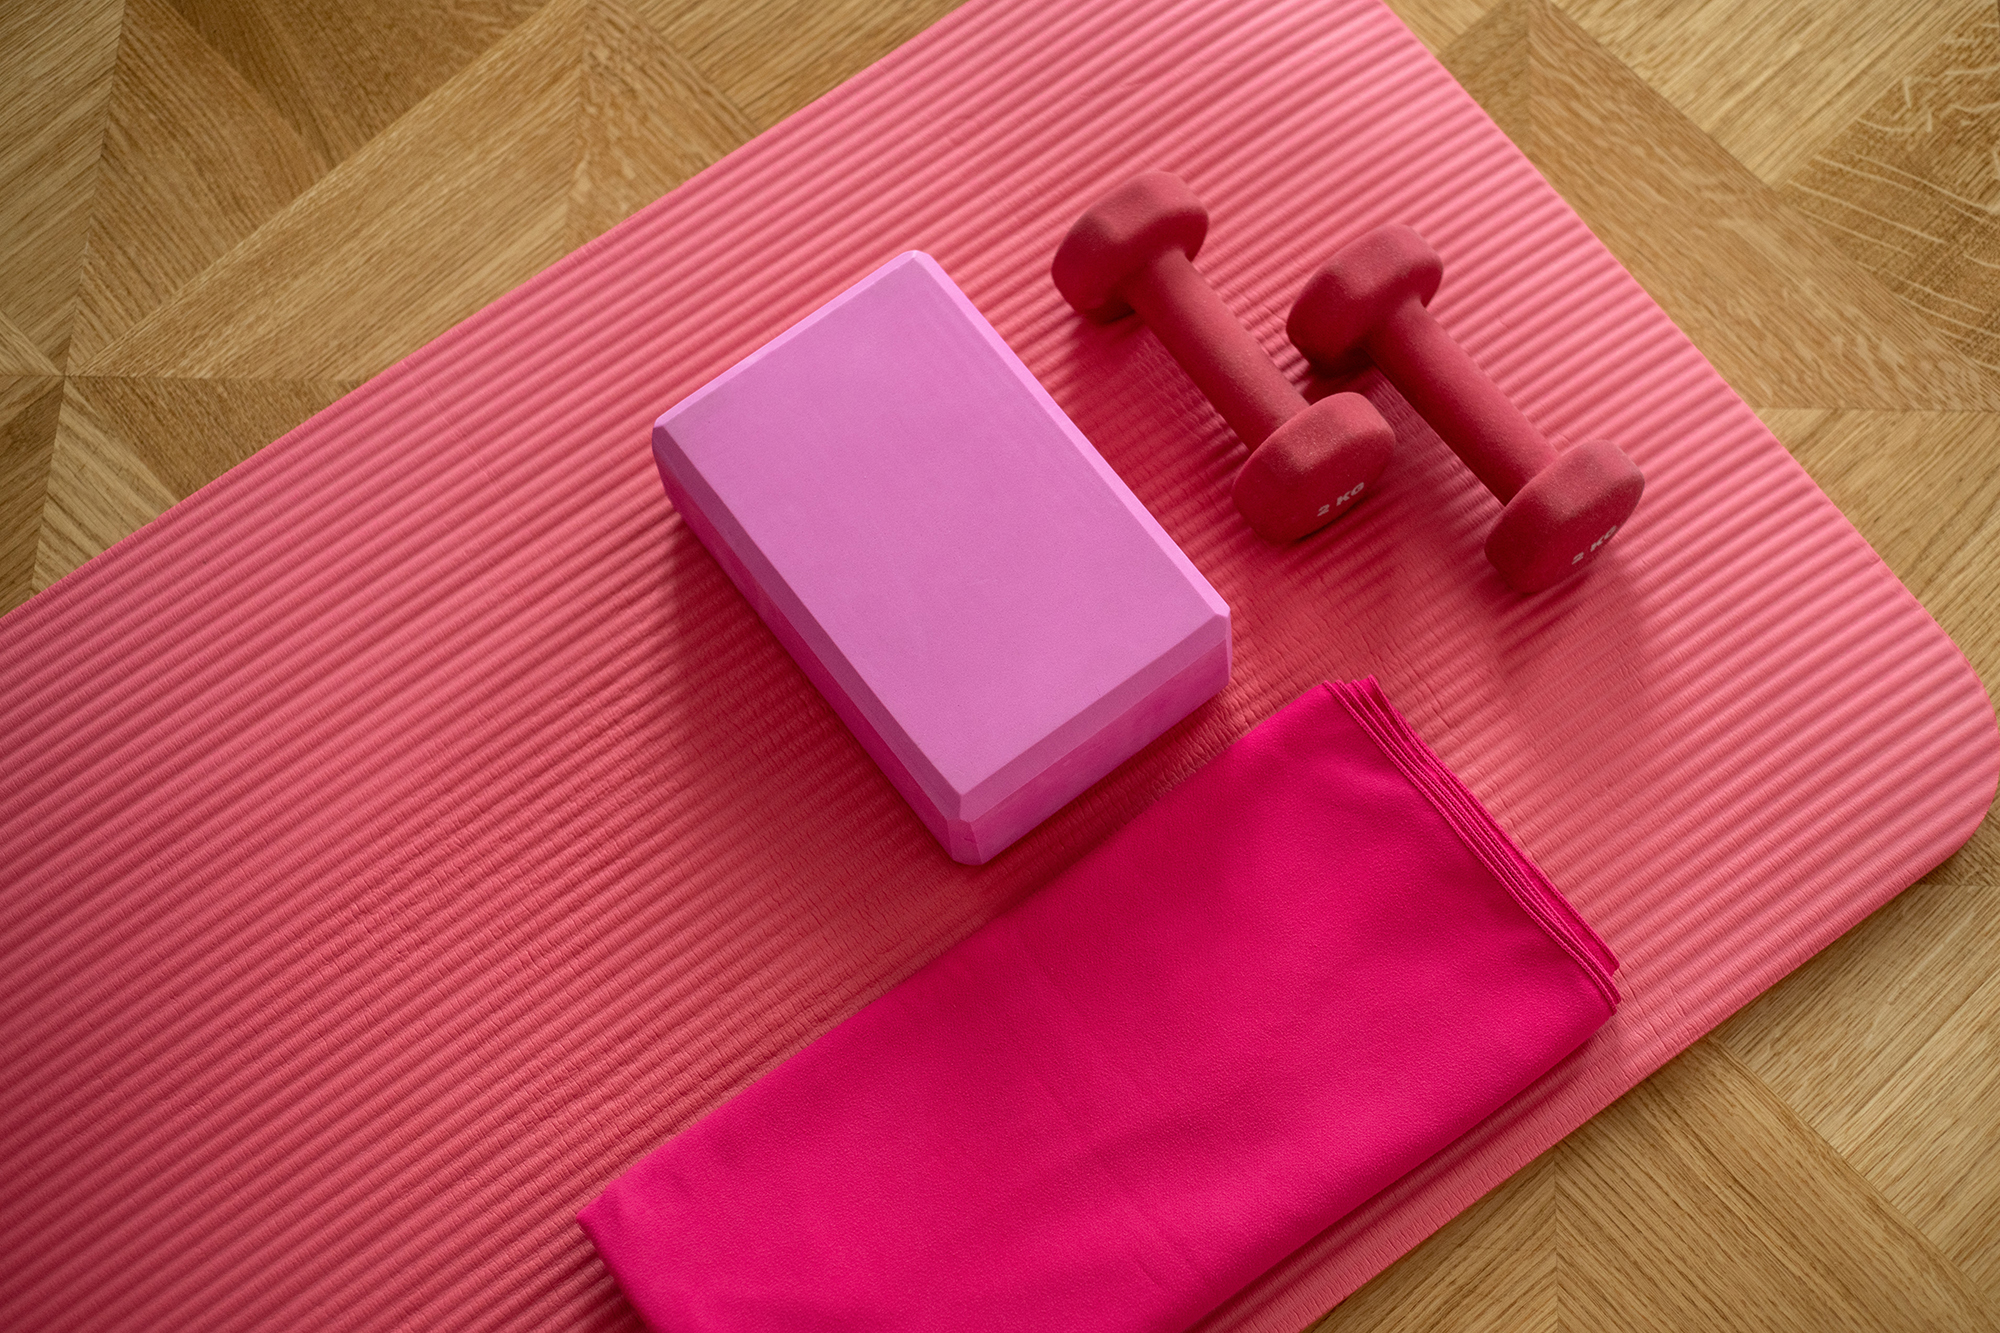 Exercise regularly - Weight Management Programme in Hong Kong